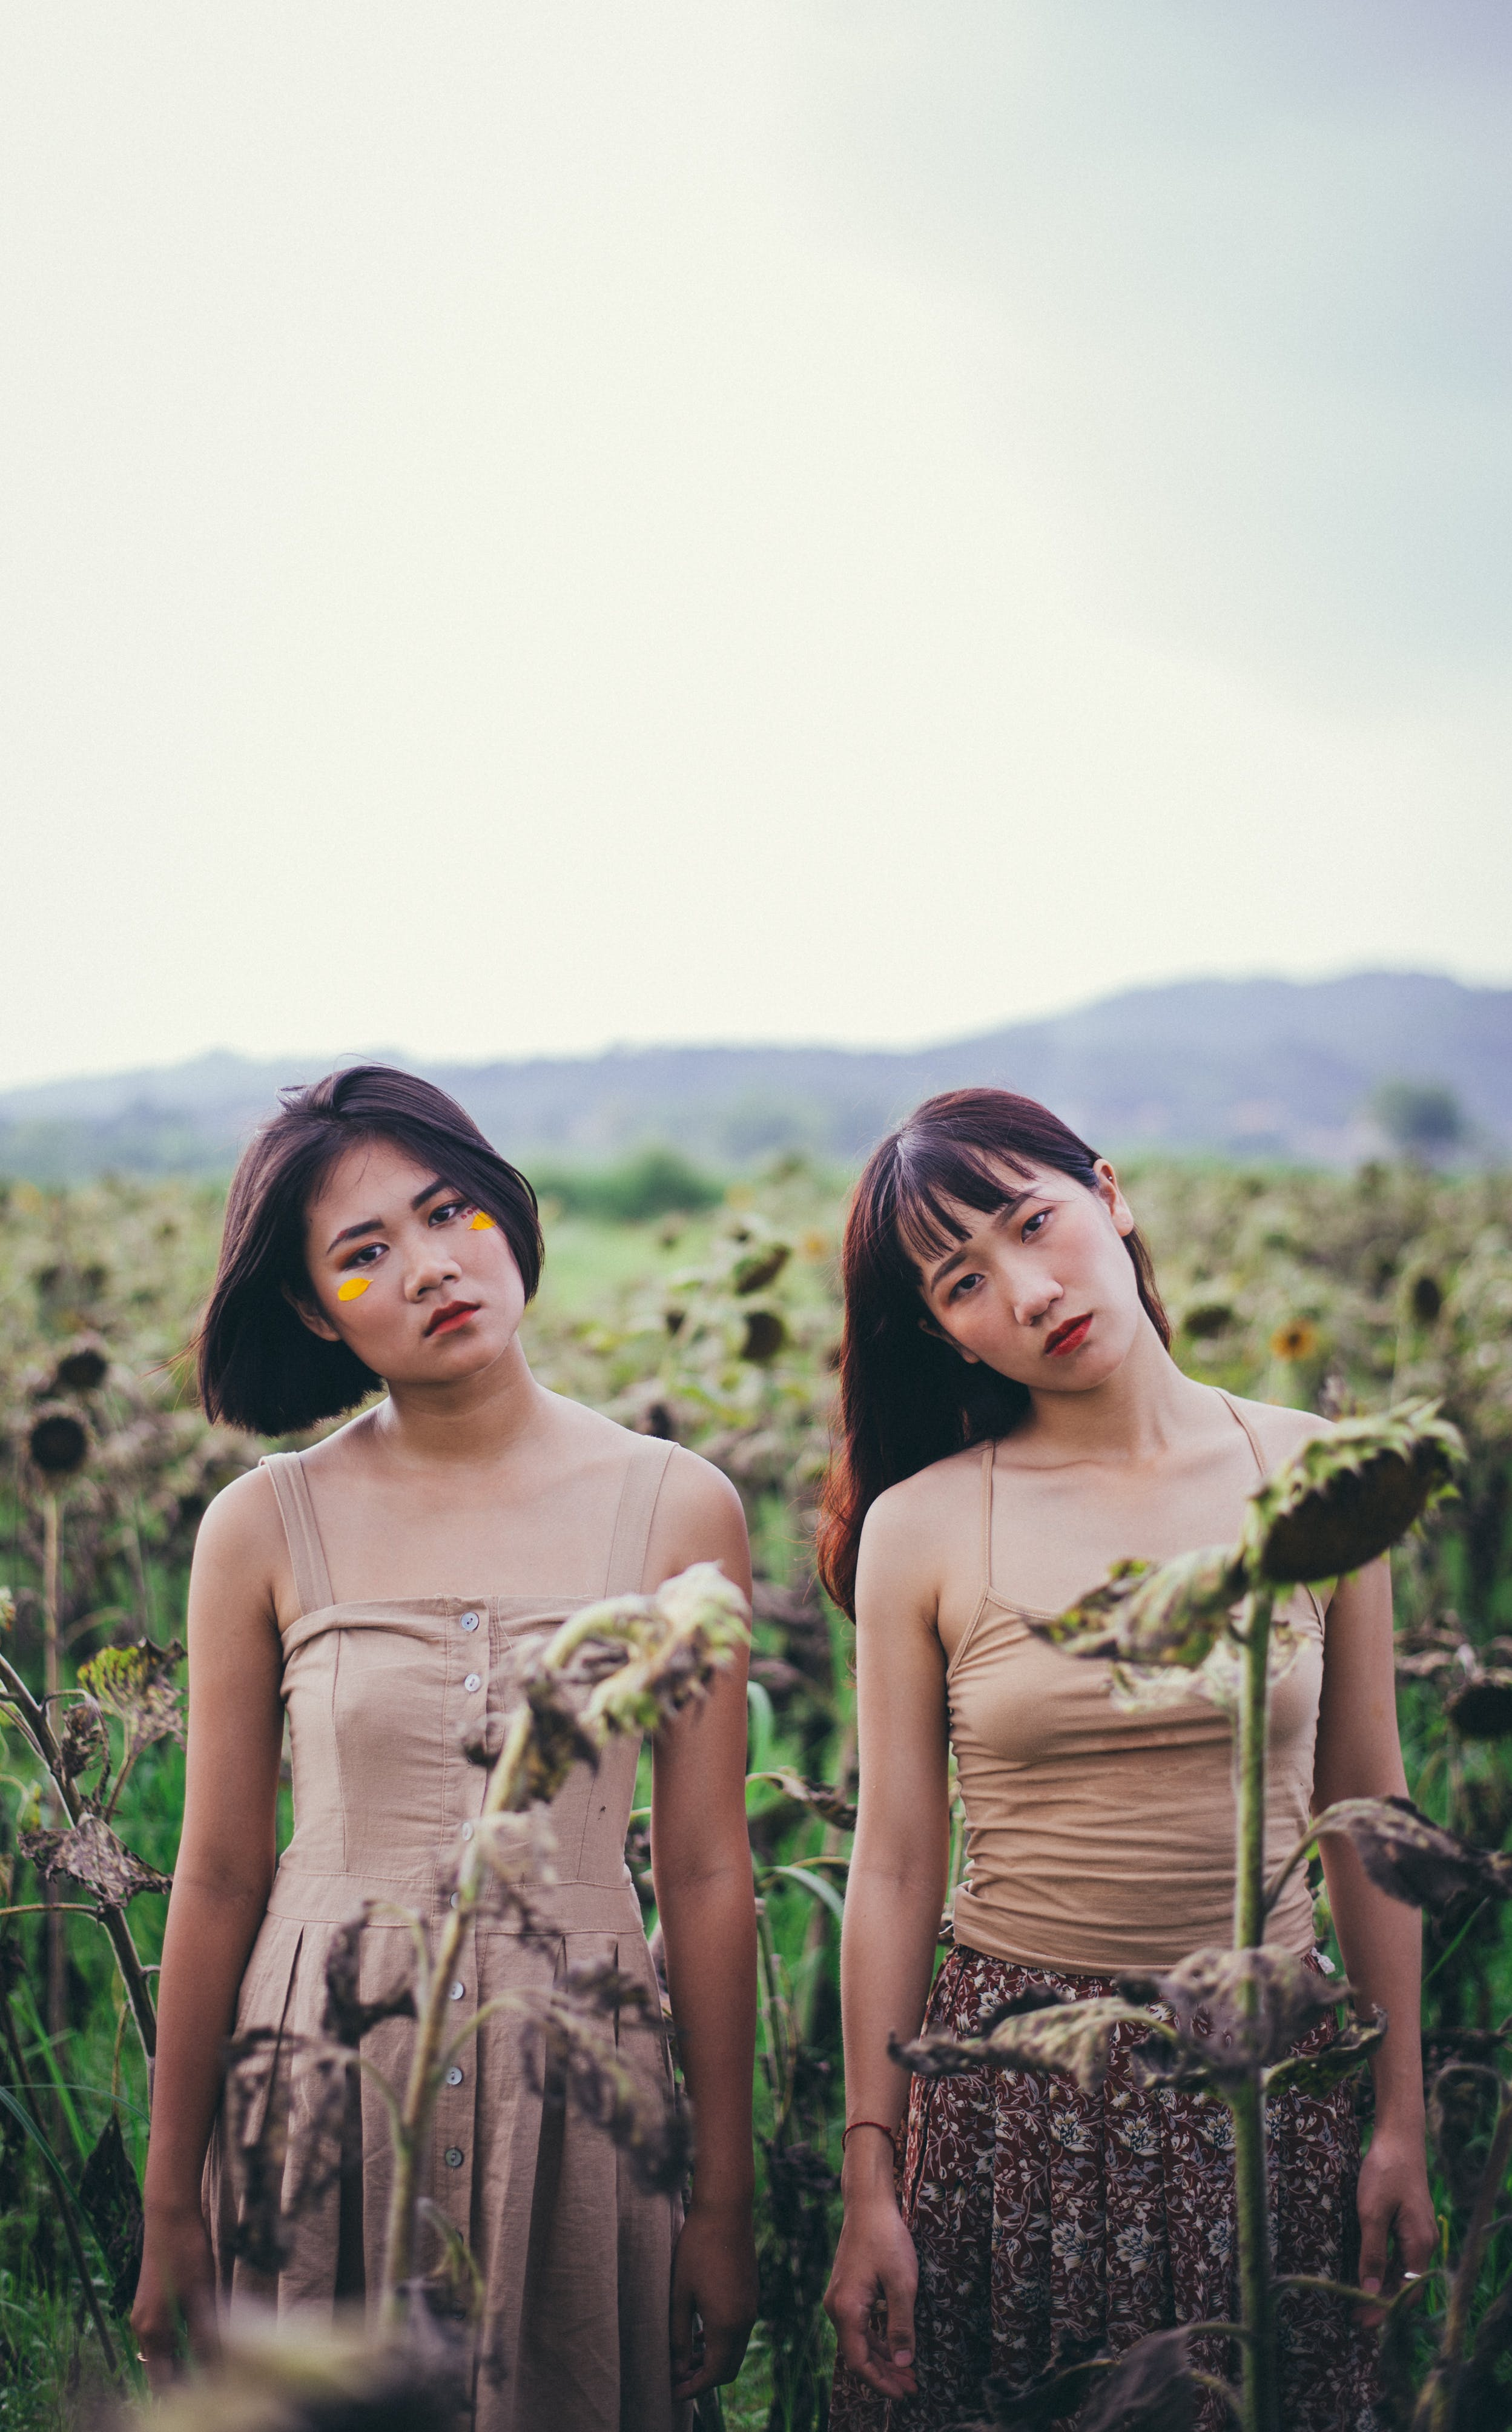 Close-up Photo of Two Women Standing on Sunflower Field